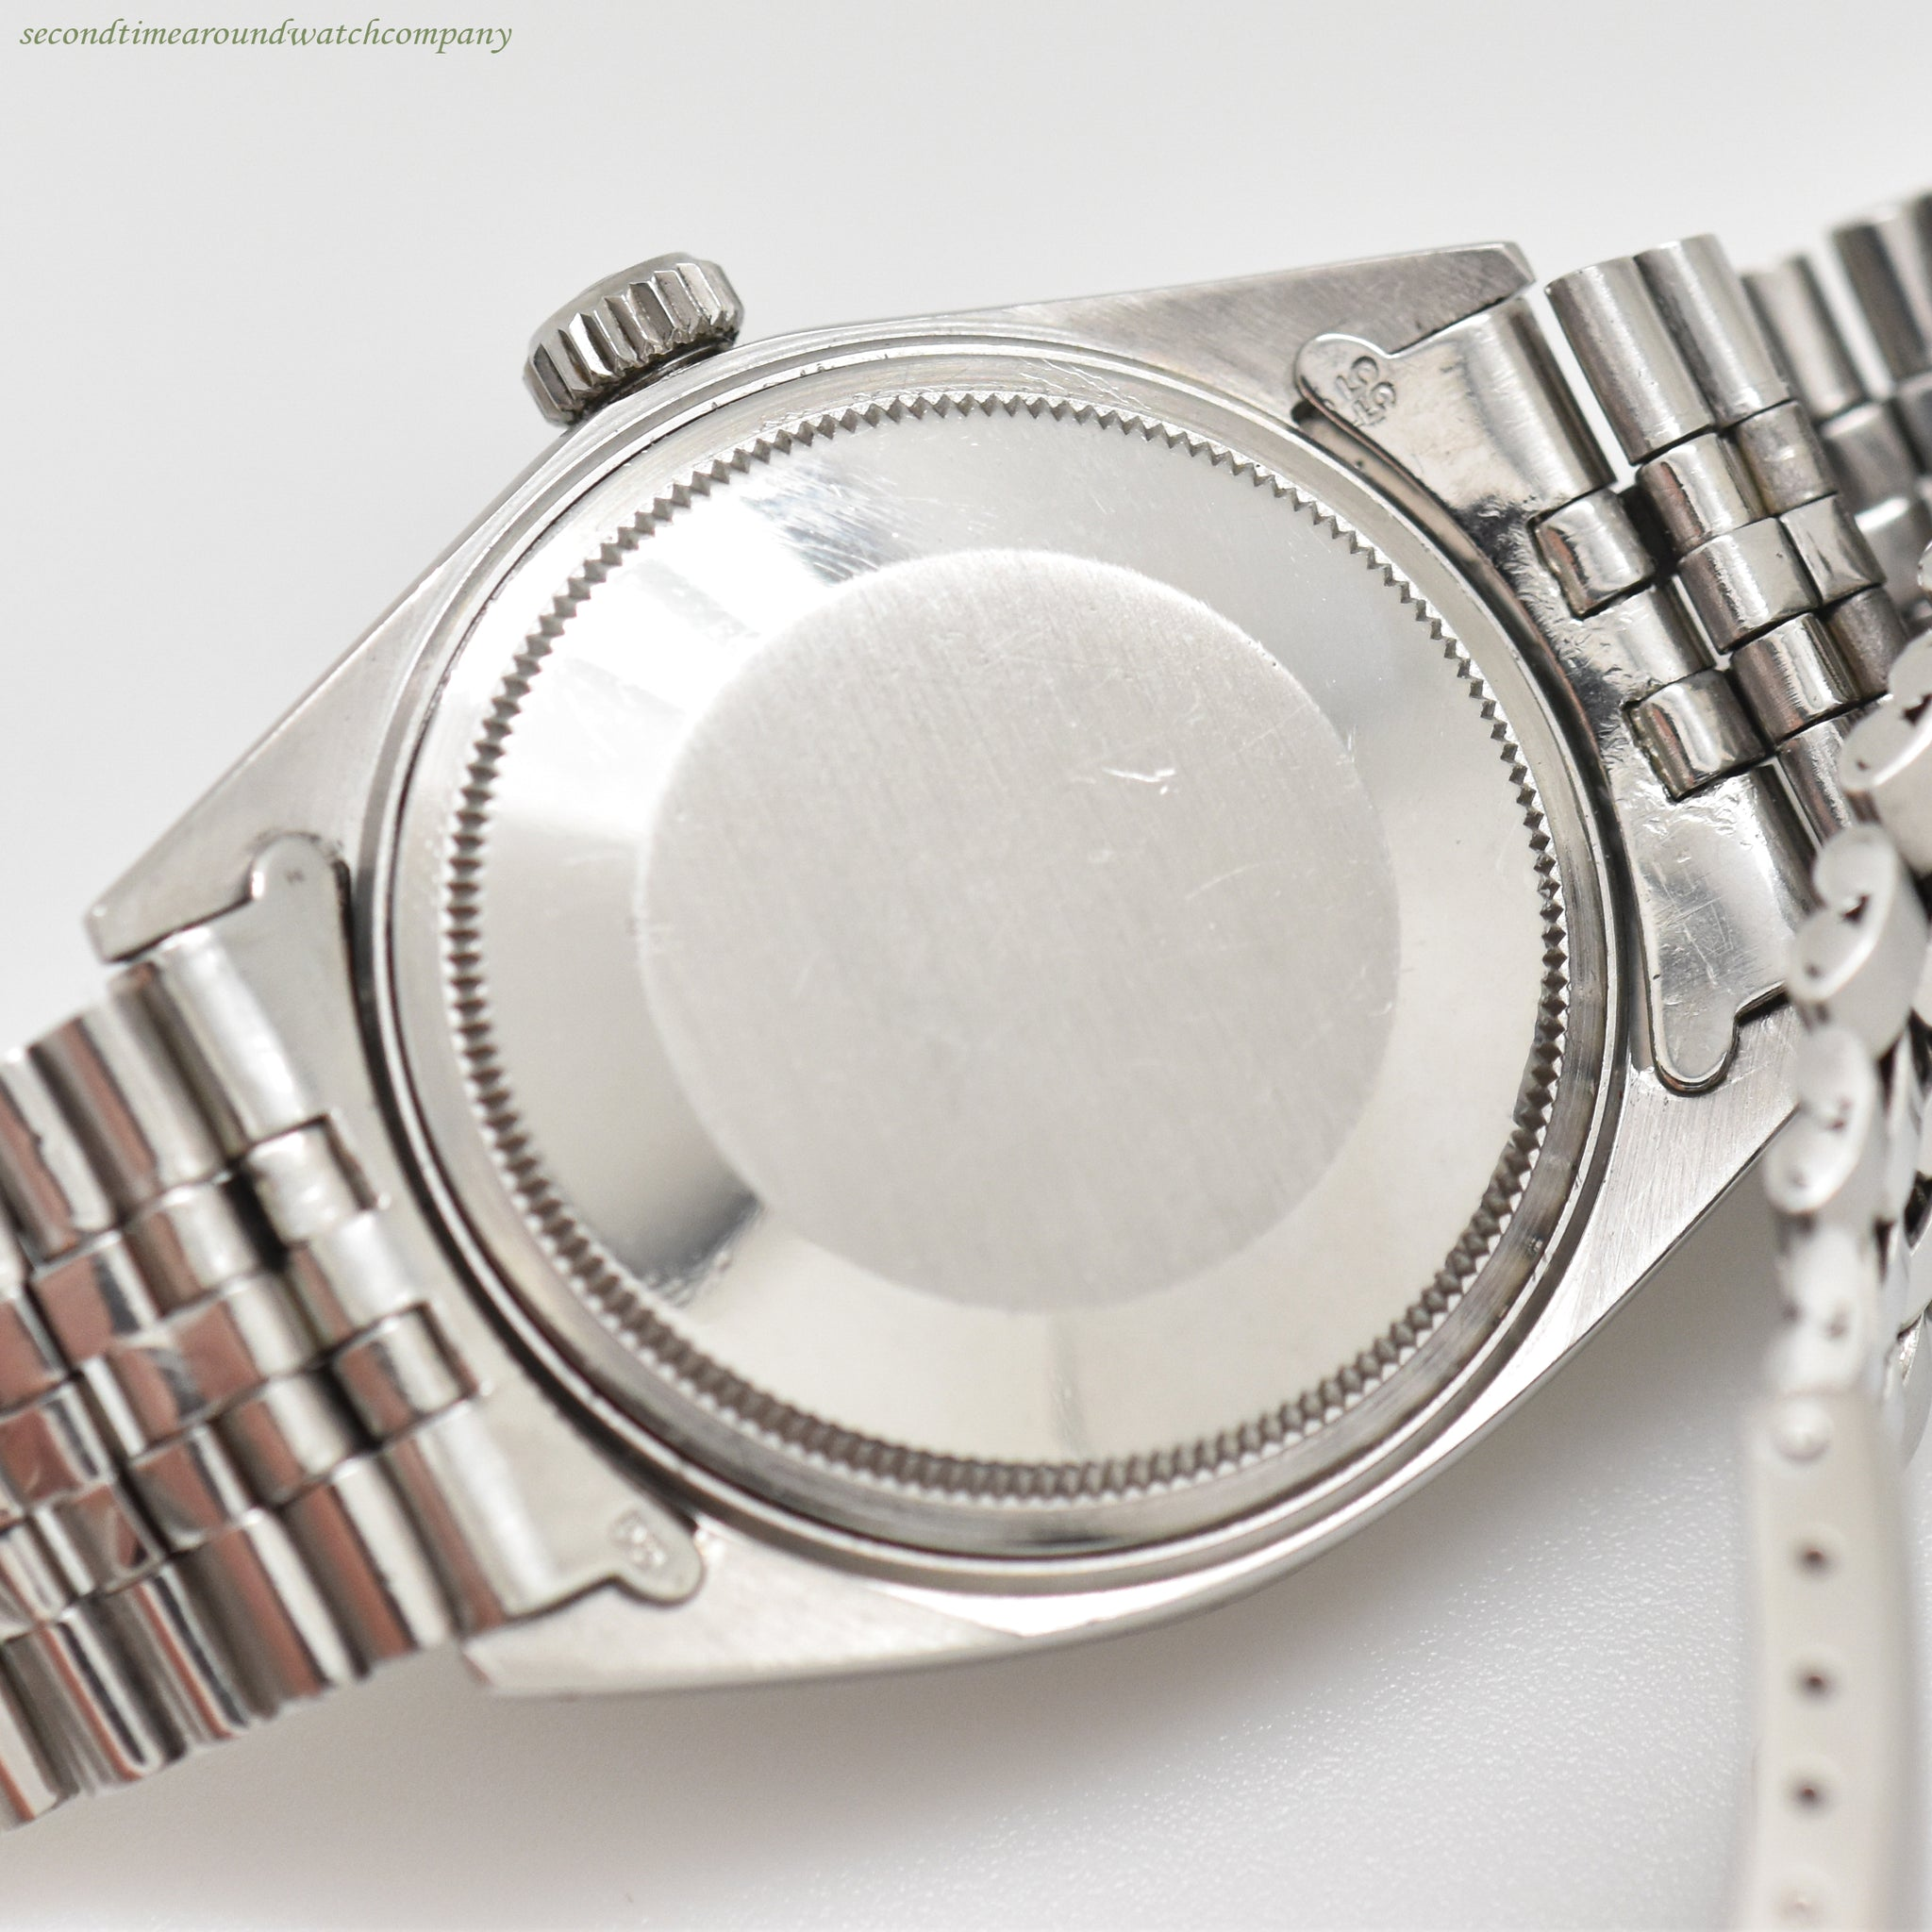 1970 Vintage Rolex Datejust Ref. 1601 14K White Gold & Stainless Steel Watch